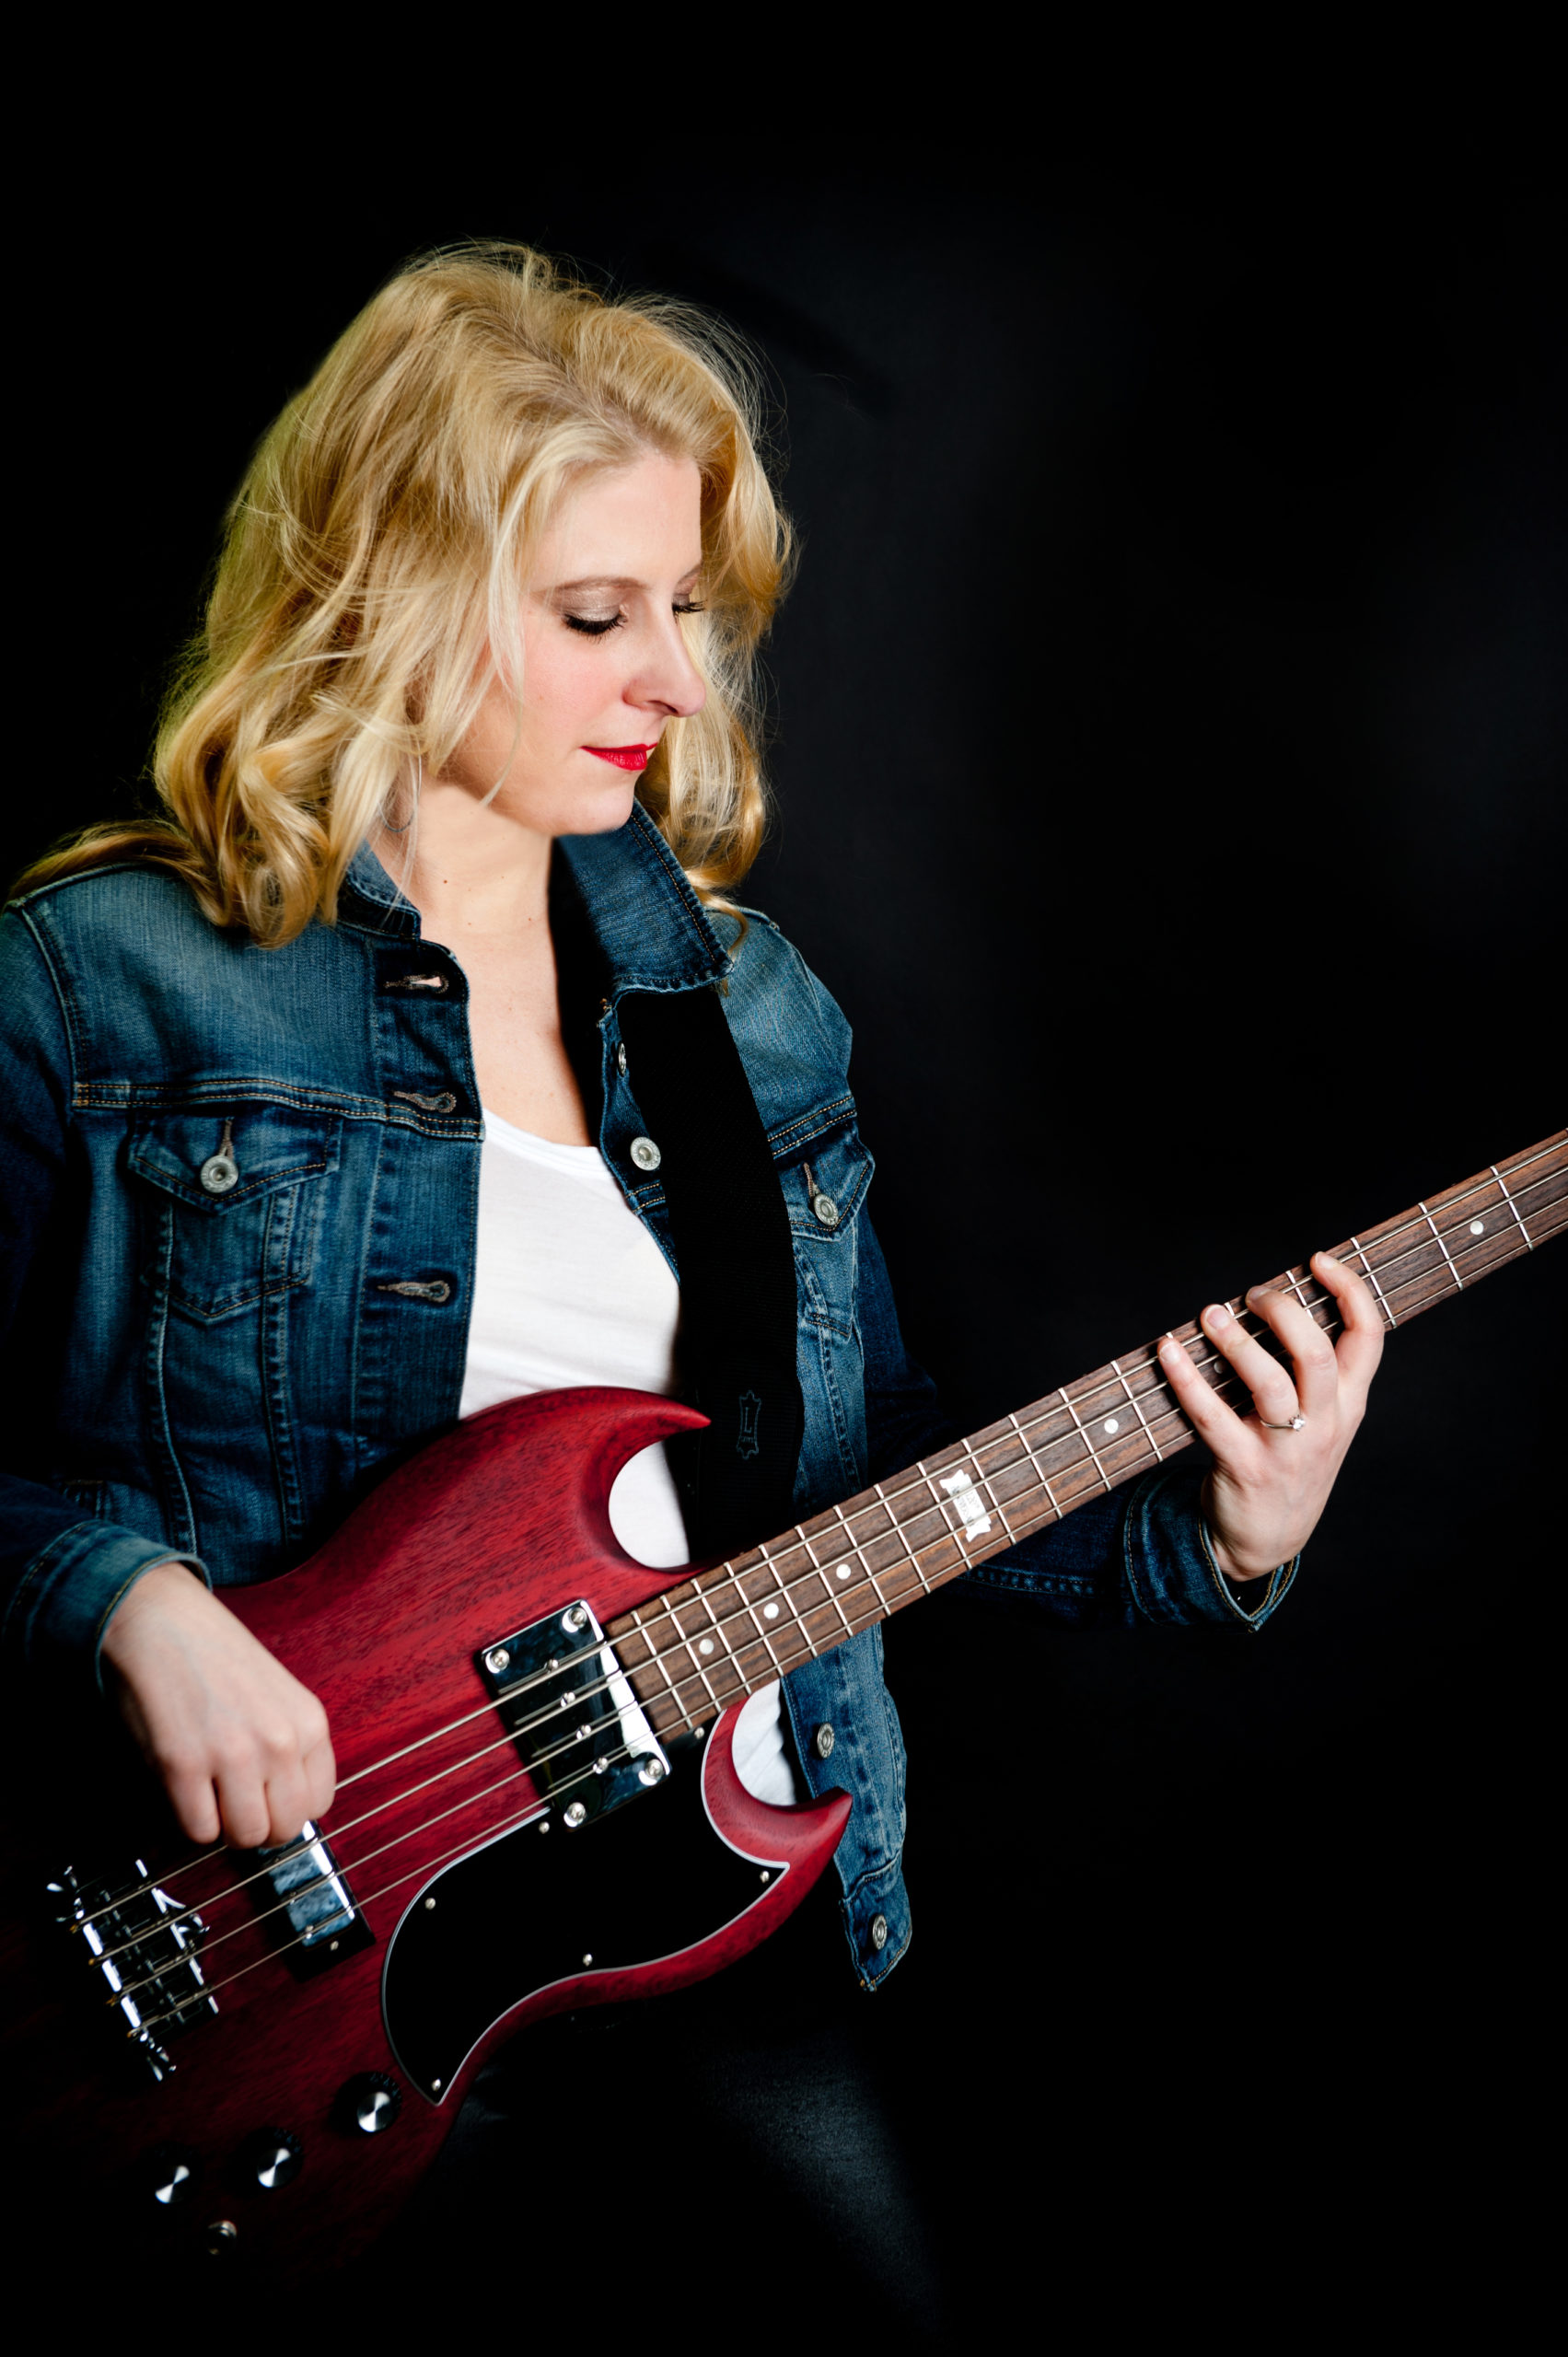 Bass Guitar Magazine Article – It's Me!